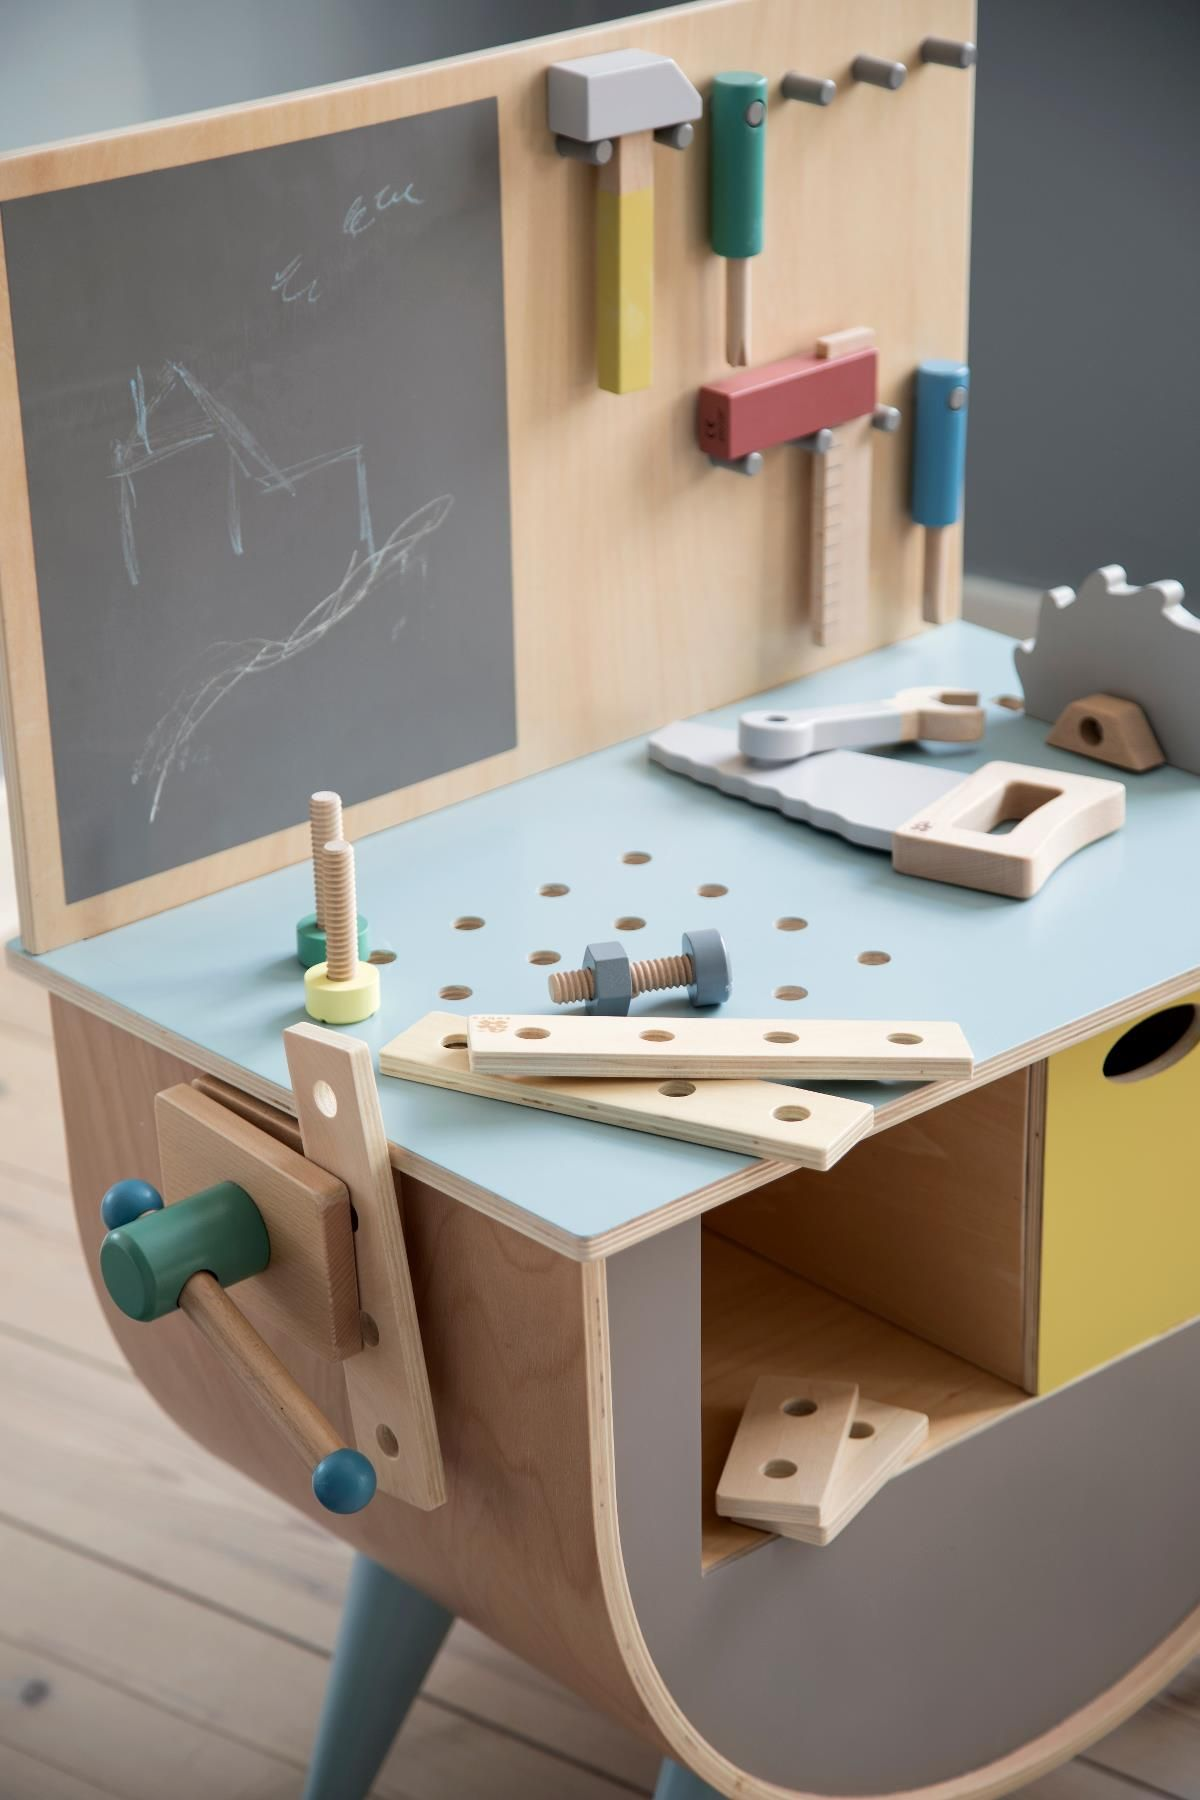 Play tool bench, warm grey in 2020 Warm grey, Wooden gifts